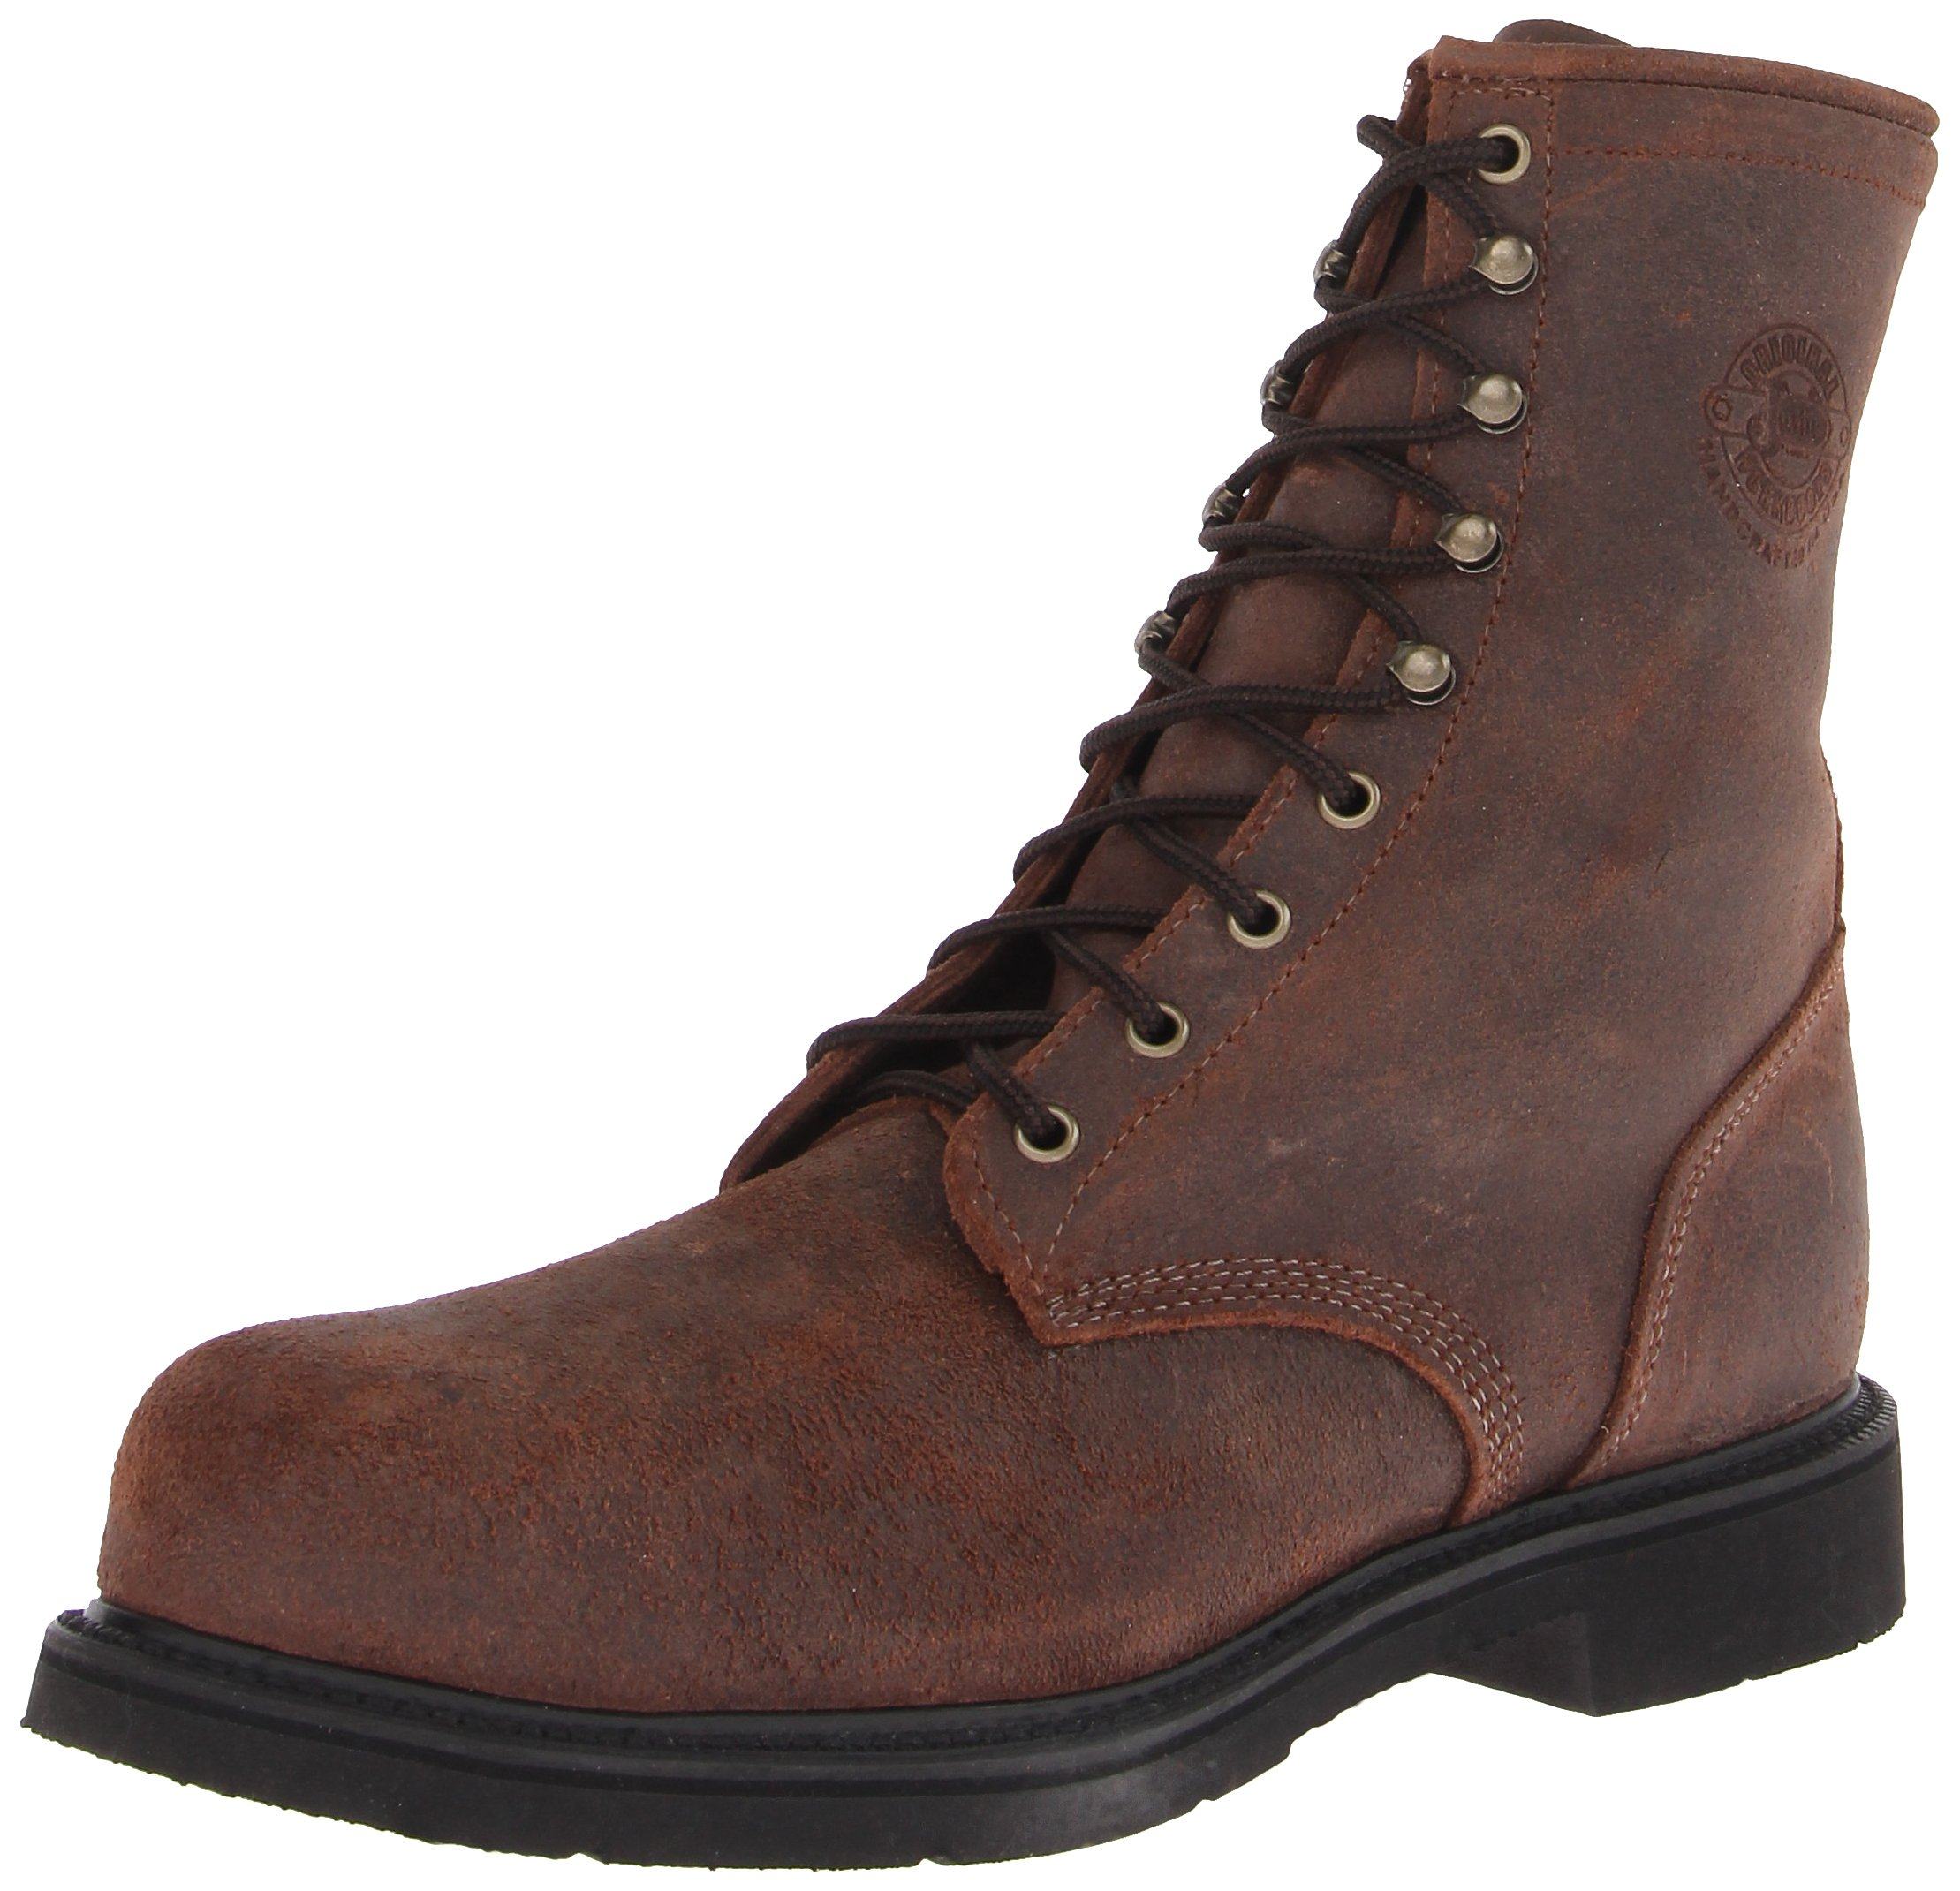 Justin Original Work Boots Men's American Traditionalseel Toed Work Shoe,Dark Mountain/Steel,10.5 D US by Justin Boots